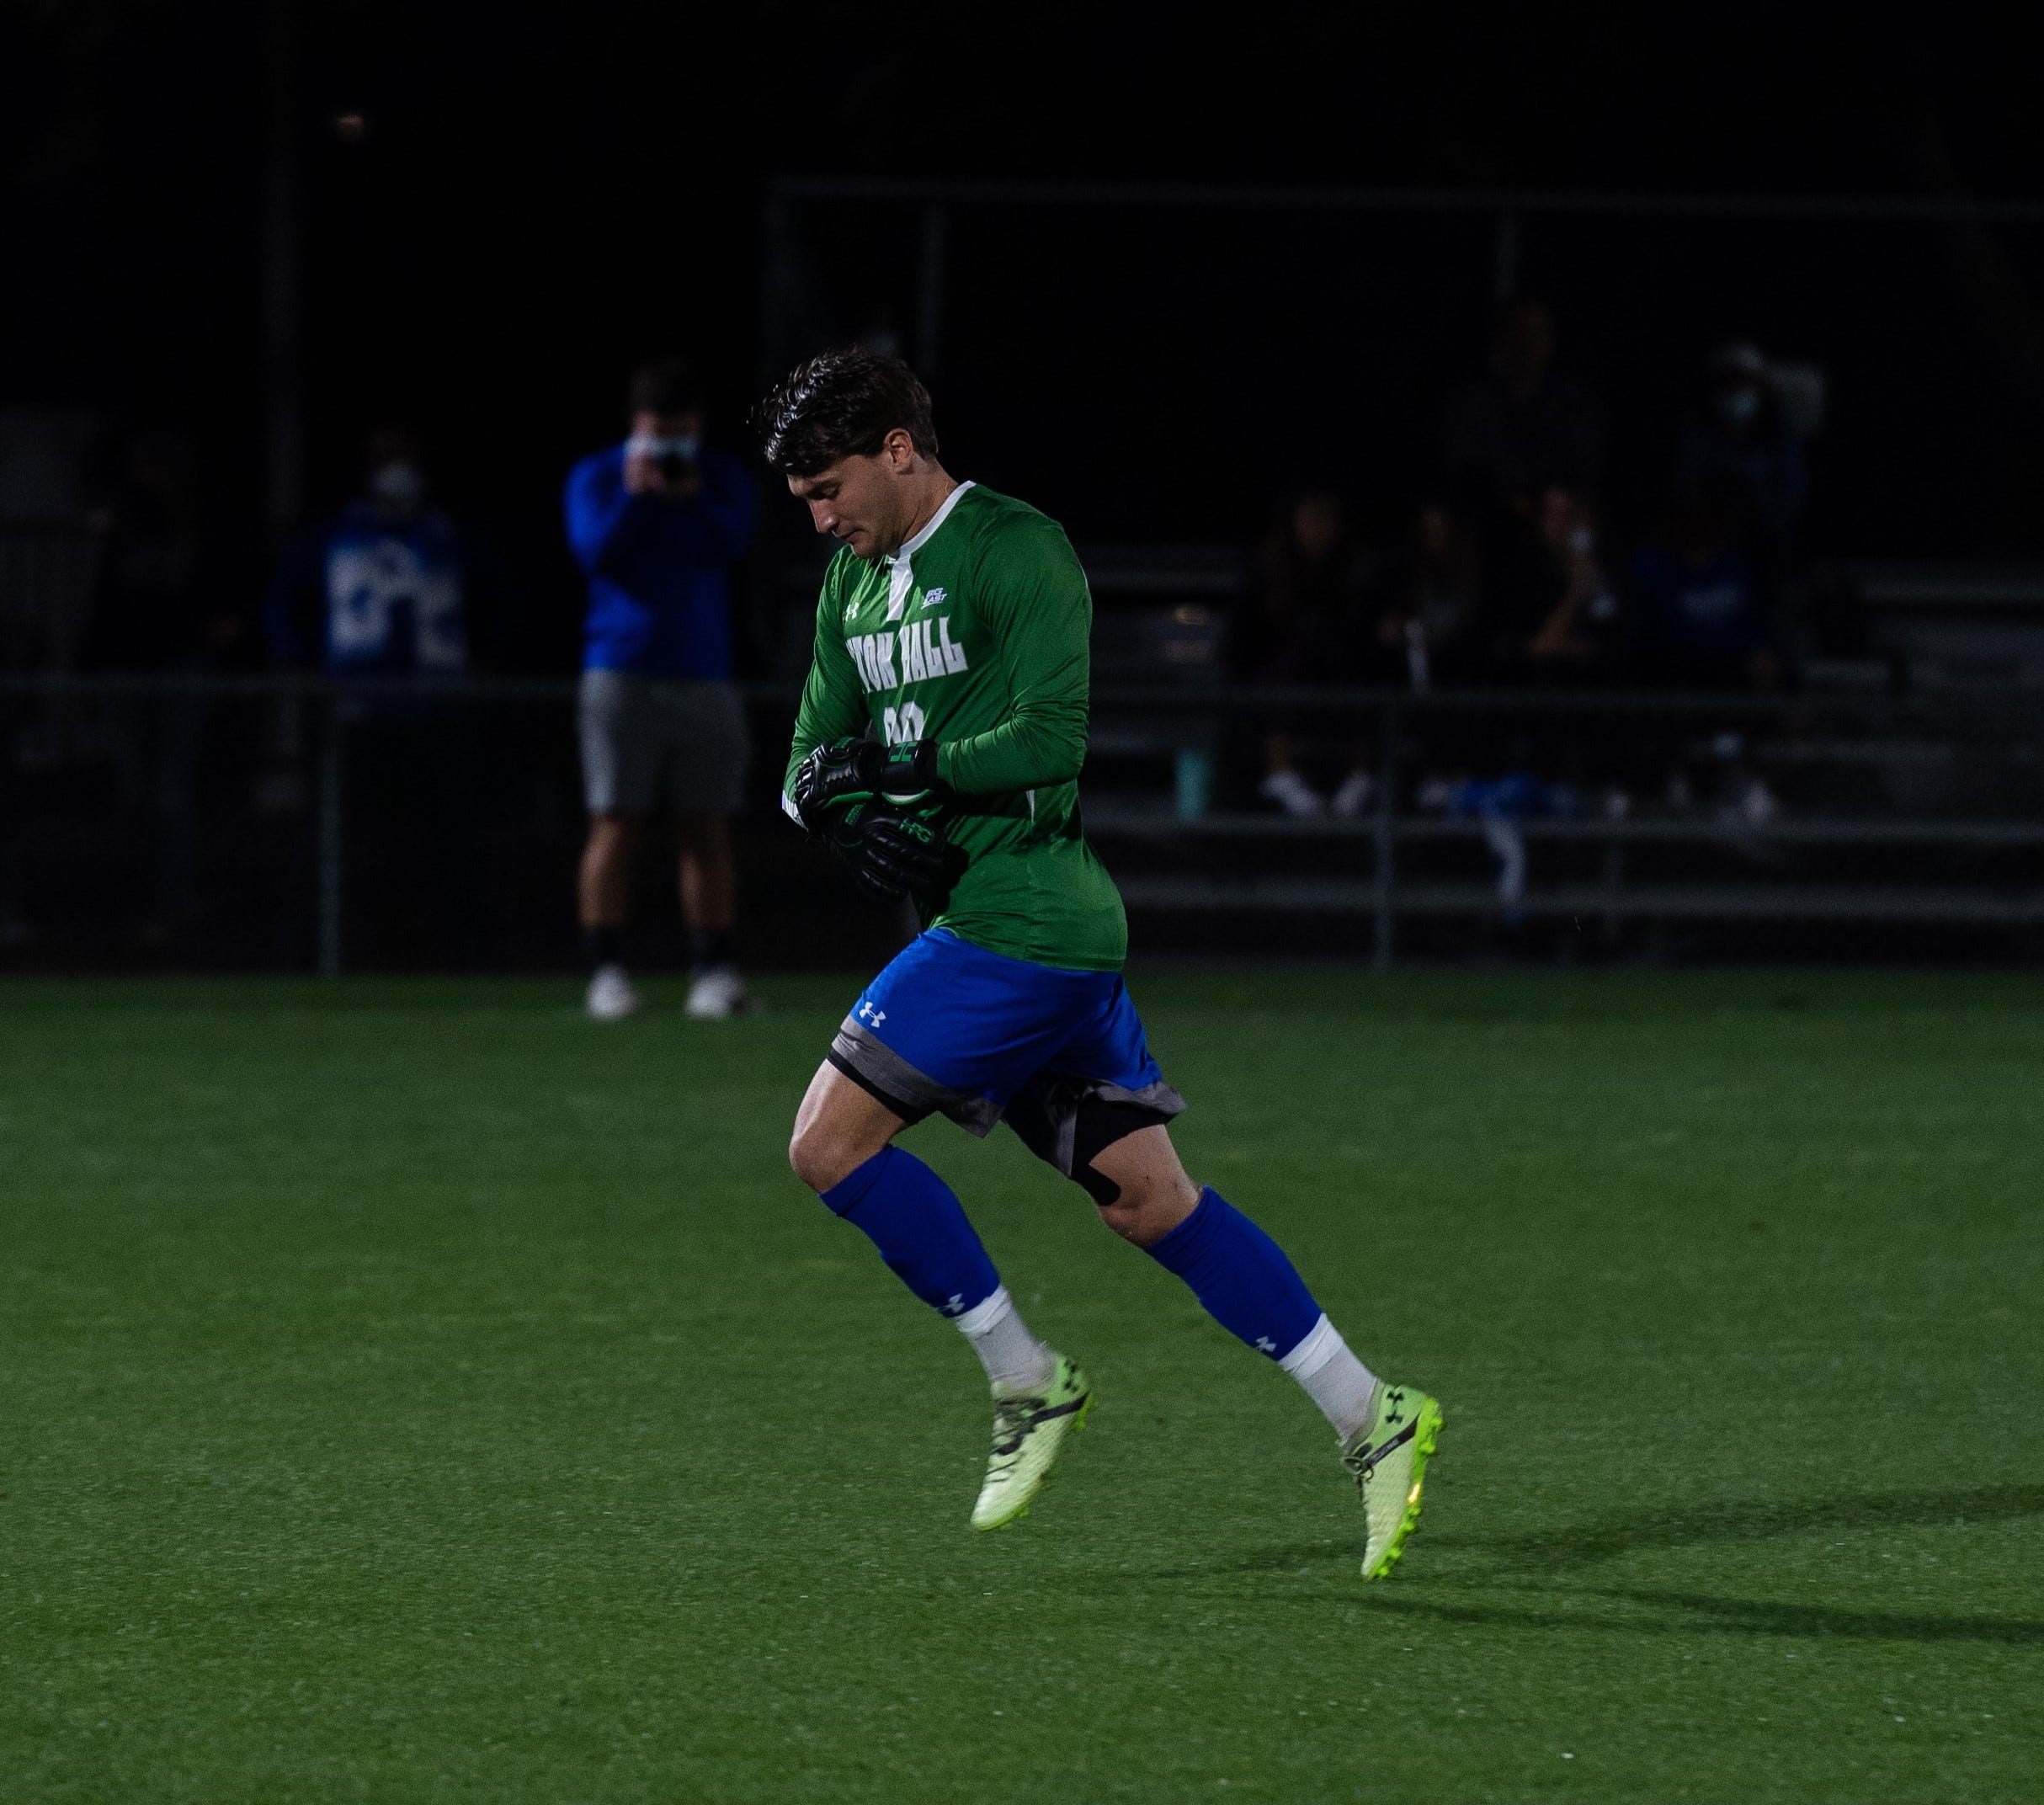 Watch: Raw video of Seton Hall soccer goalkeeper Andreas Nota's NCAA Tourney heroics